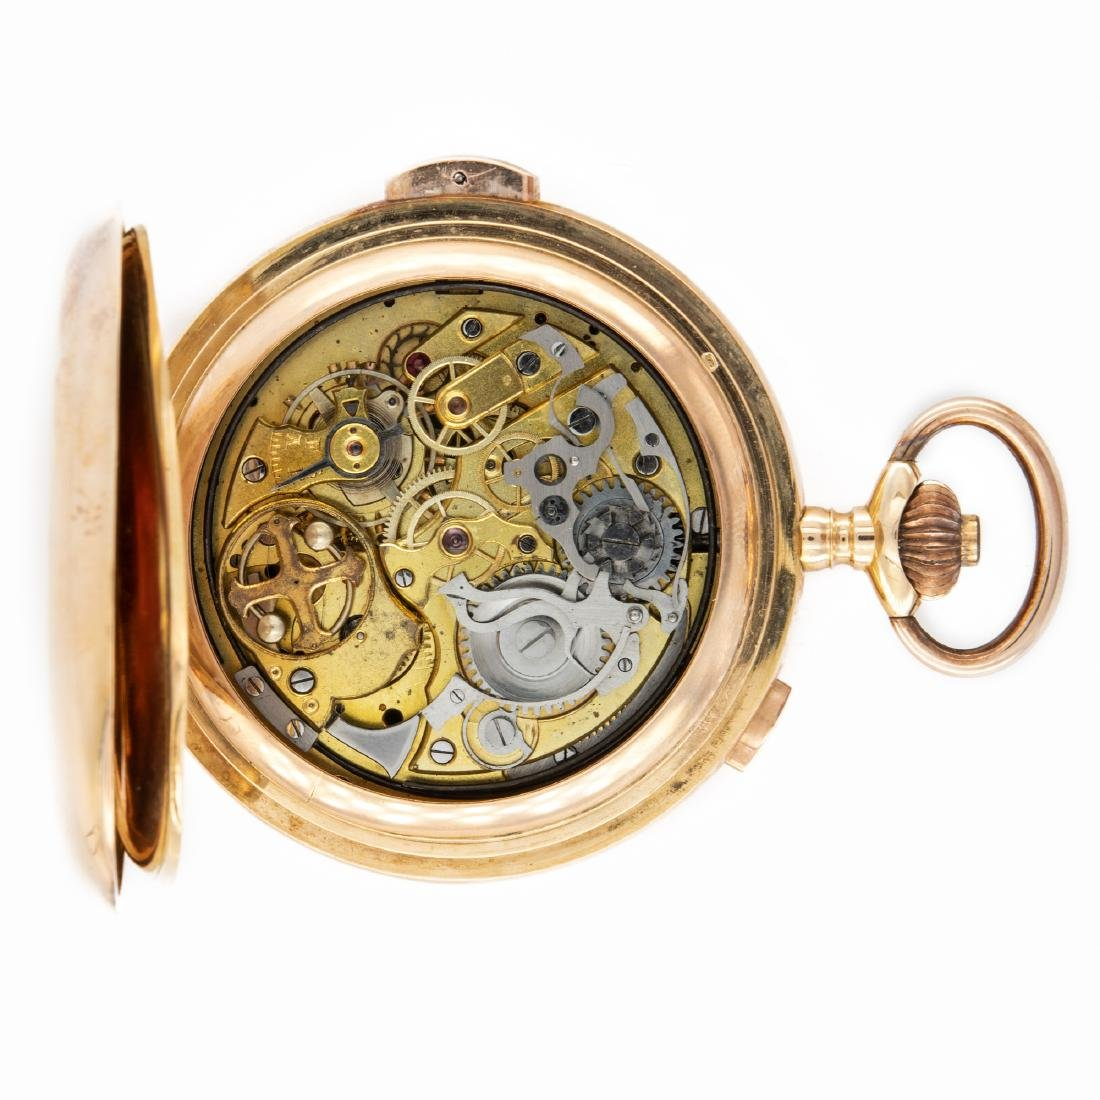 GOLD HUNTER CASE POCKET WATCH WITH CHRONOGRAPH AND - 2